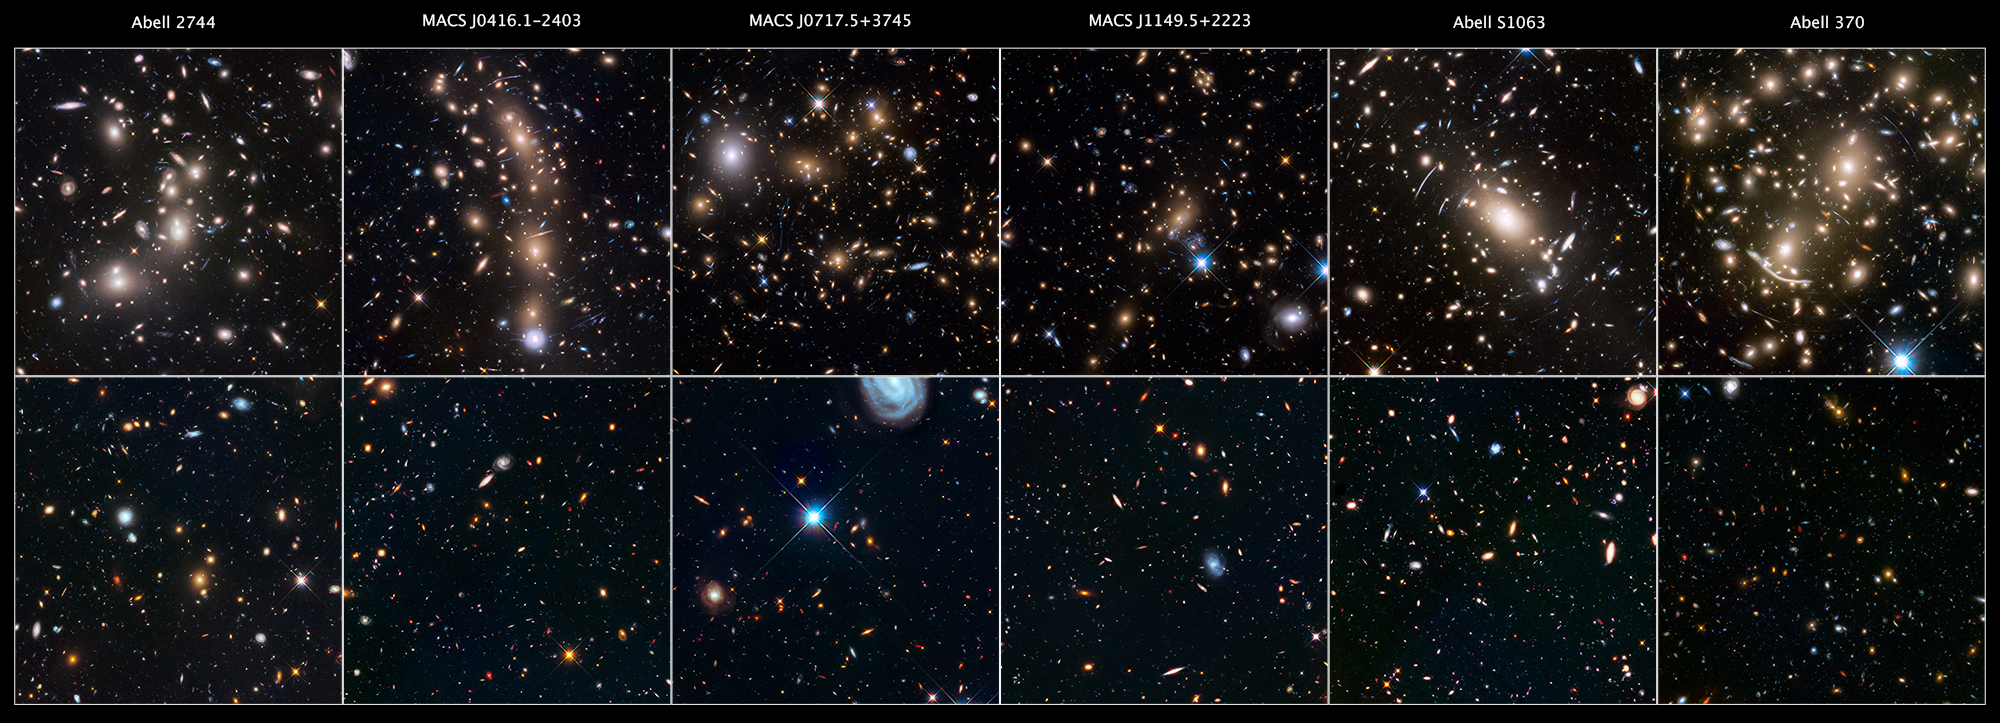 """This is a gallery of the Hubble Space Telescope Frontier Fields. The top six panels are massive galaxy clusters that act as huge lenses in space, magnifying and stretching images of remote galaxies behind each cluster that are too faint for Hubble to see directly. While one of the telescope's cameras looked at each cluster of galaxies, another camera simultaneously viewed an adjacent patch of sky. This second region is called a """"parallel field"""" — a seemingly sparse portion of sky that provides a deep look into the early universe. Astronomers observed each of the six clusters and six parallel fields in both near-infrared and visible light. This allowed scientists to create more detailed, overlapping, and complete images. - Image Credits: NASA, ESA, STScI, and the HFF team"""